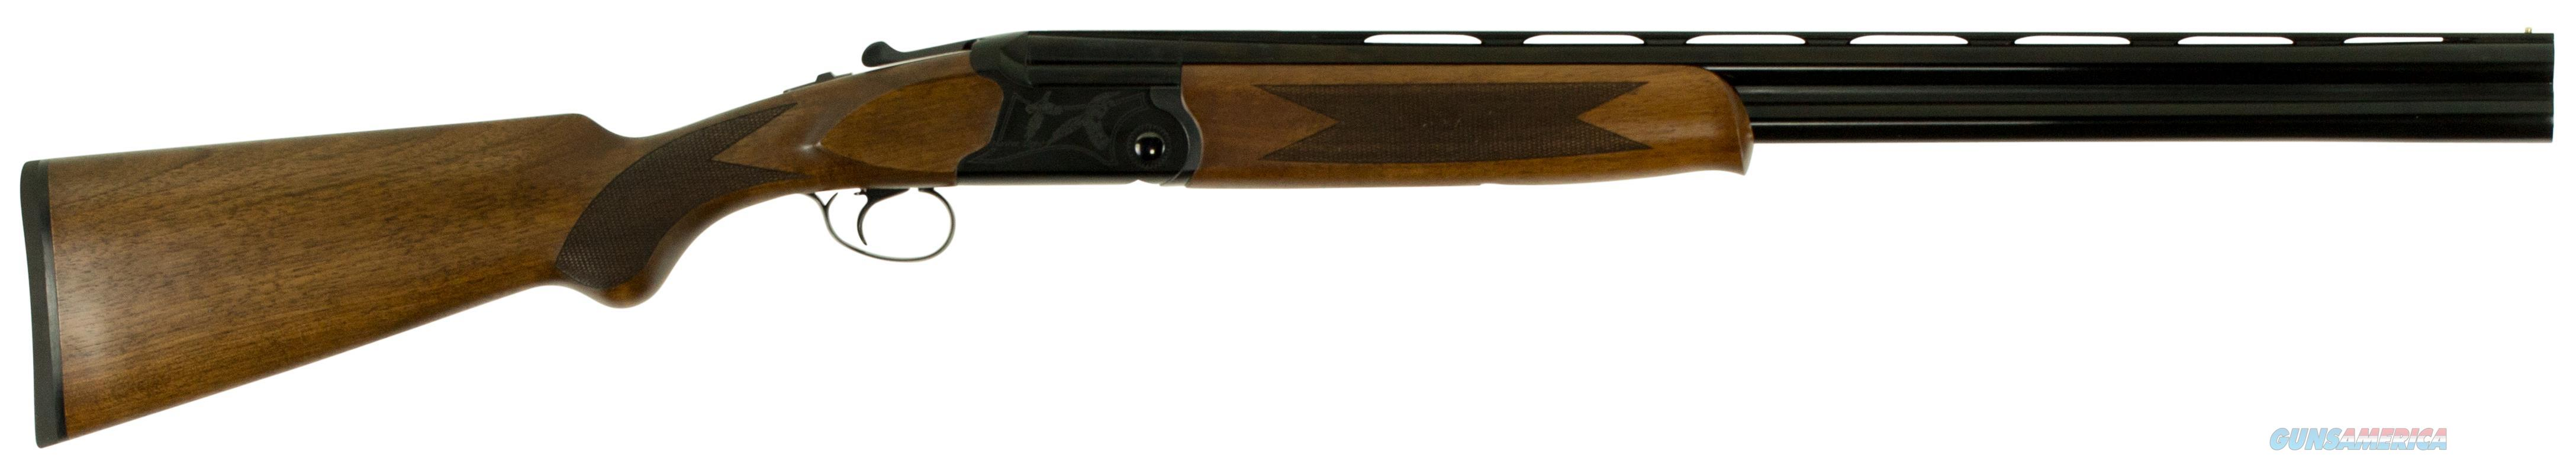 "Dickinson Oahntr Oa Over/Under 12 Gauge 26"" 3"" Wood Stk Black/White Aluminum Alloy Rcvr OAHNTR  Guns > Rifles > D Misc Rifles"